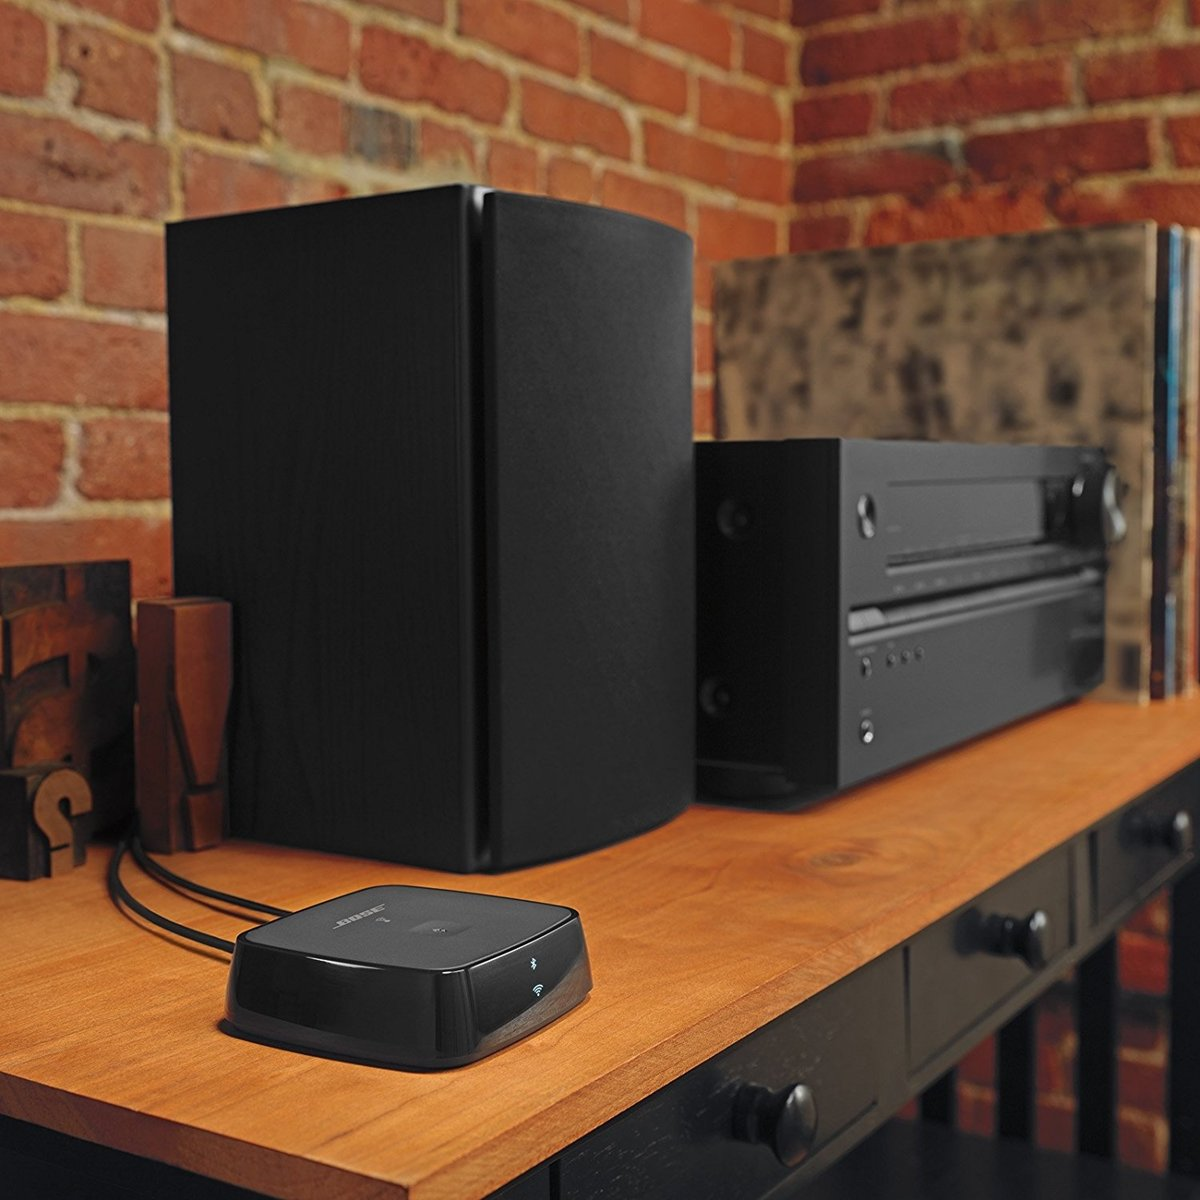 bol.com | Bose SoundTouch Wireless Link adapter